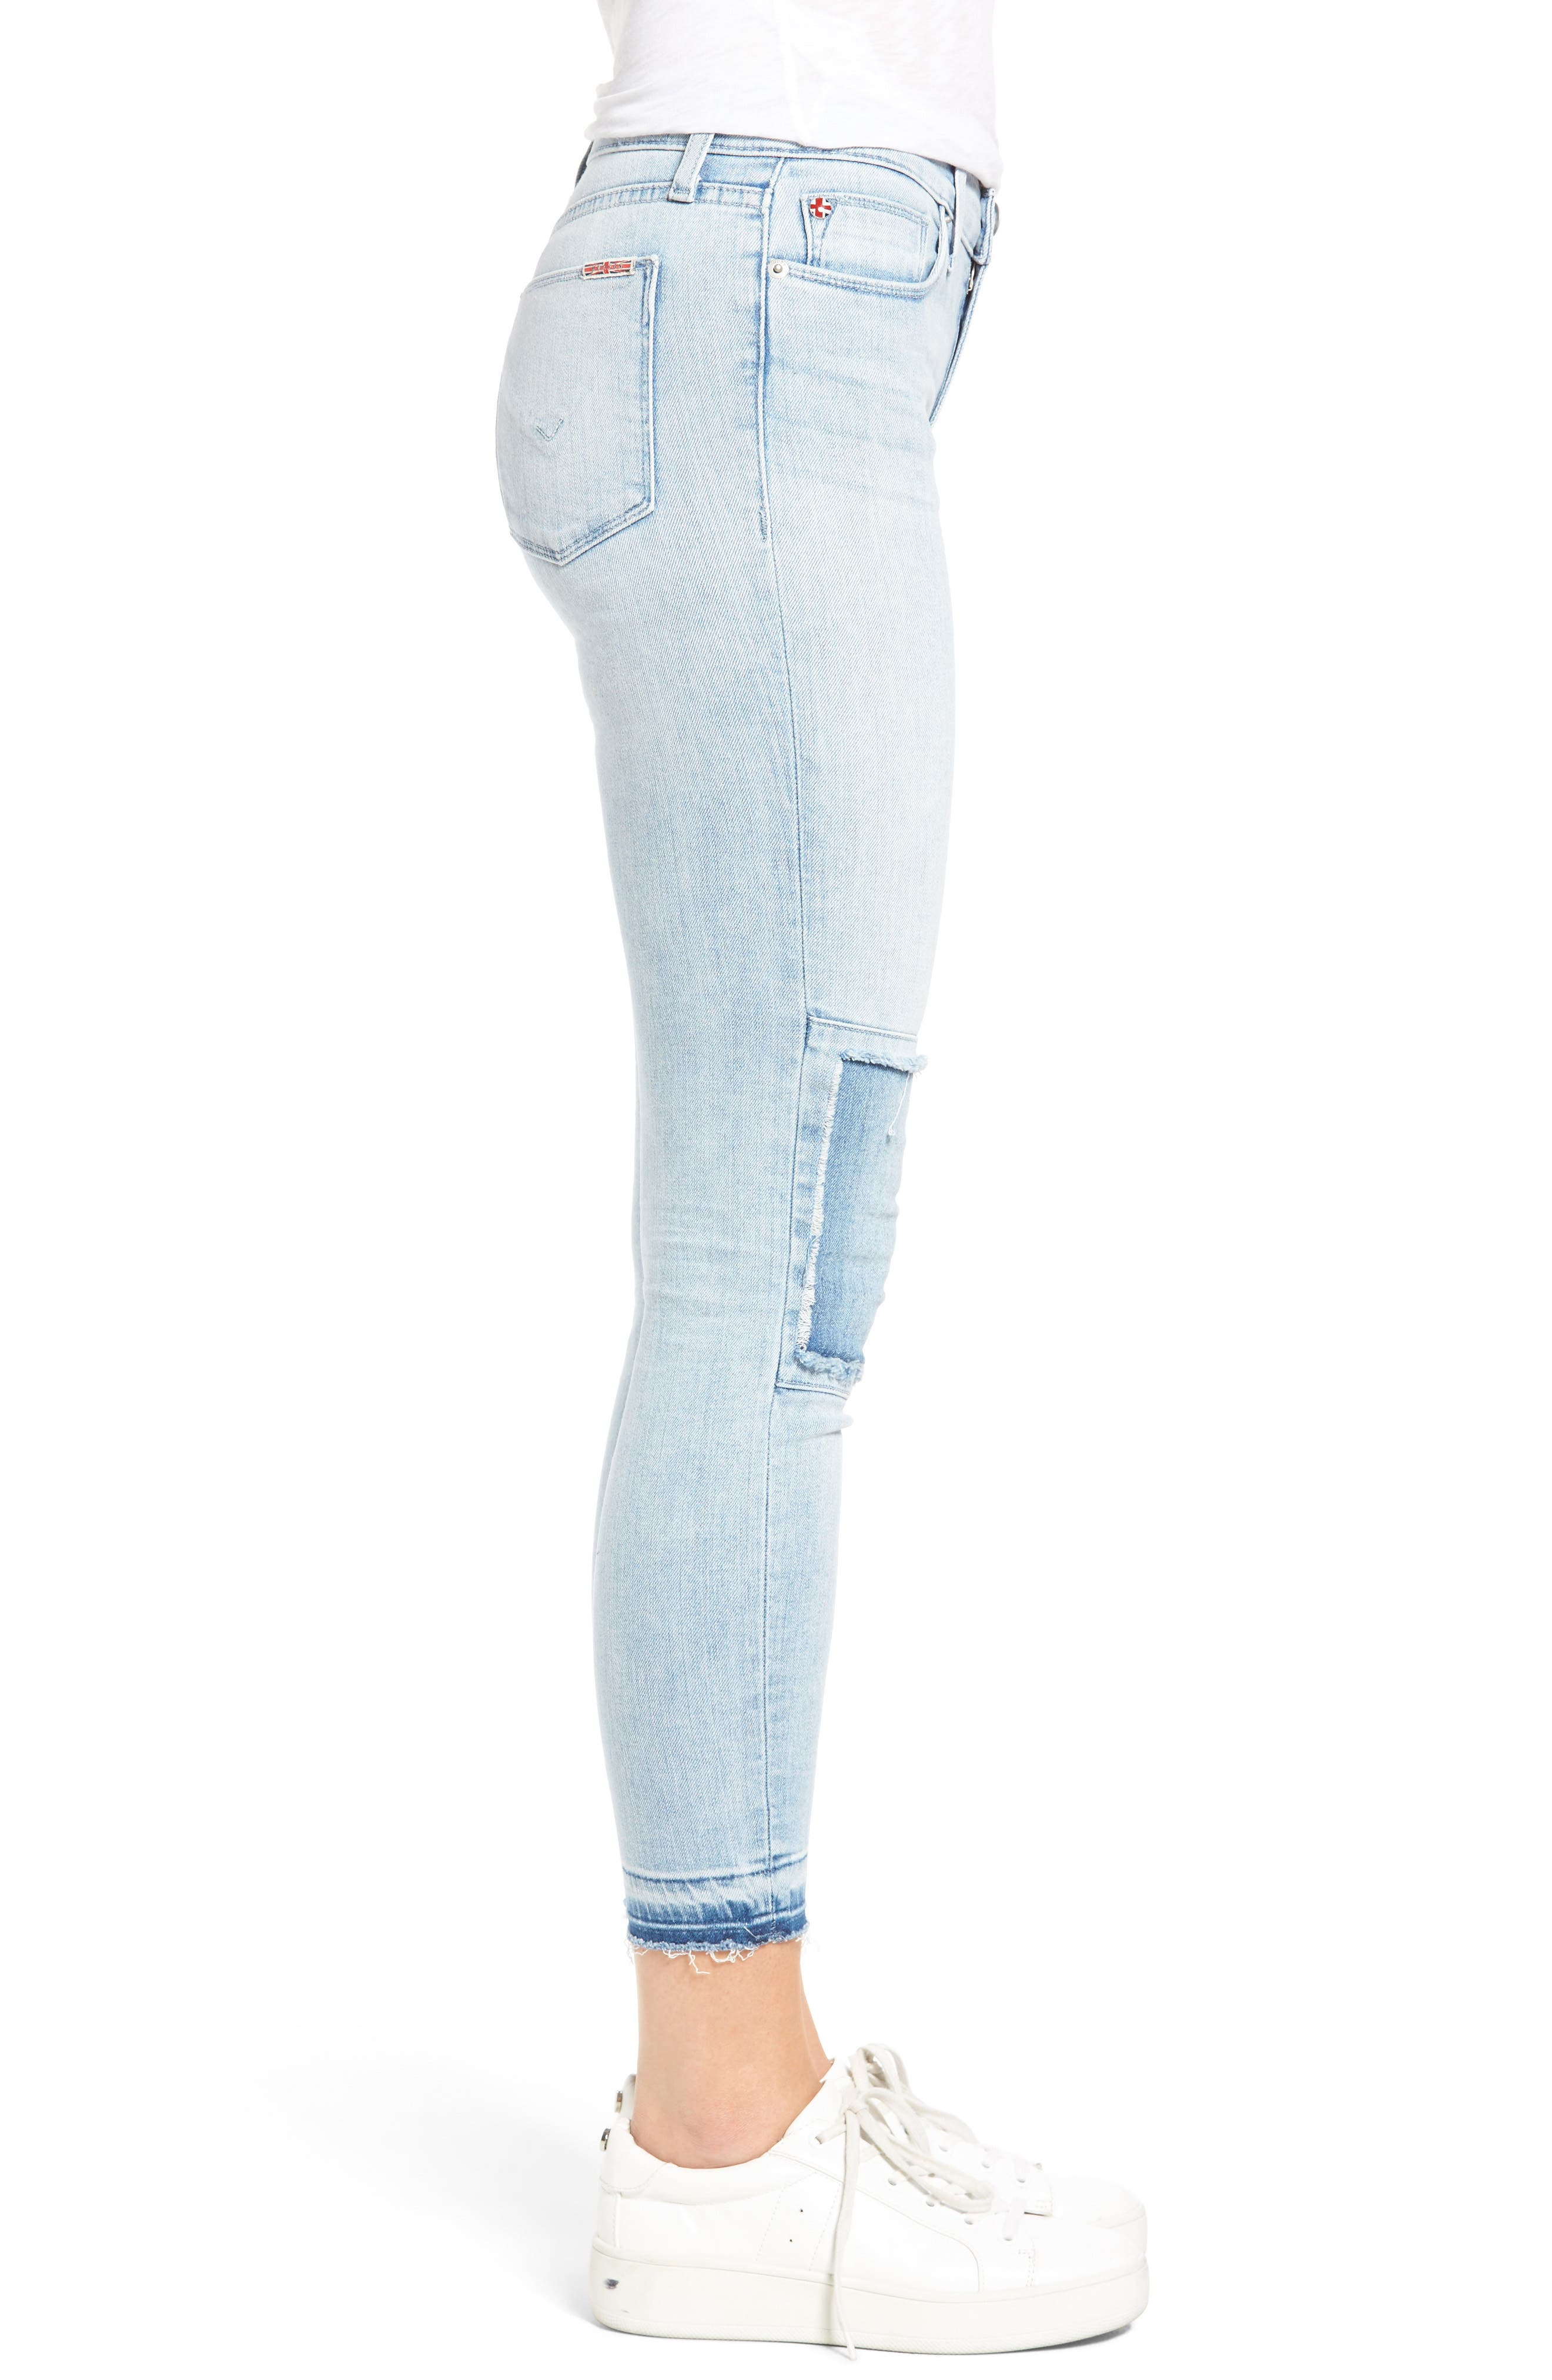 Szzi Mid Rise Patched Skinny Jeans,                             Alternate thumbnail 3, color,                             455